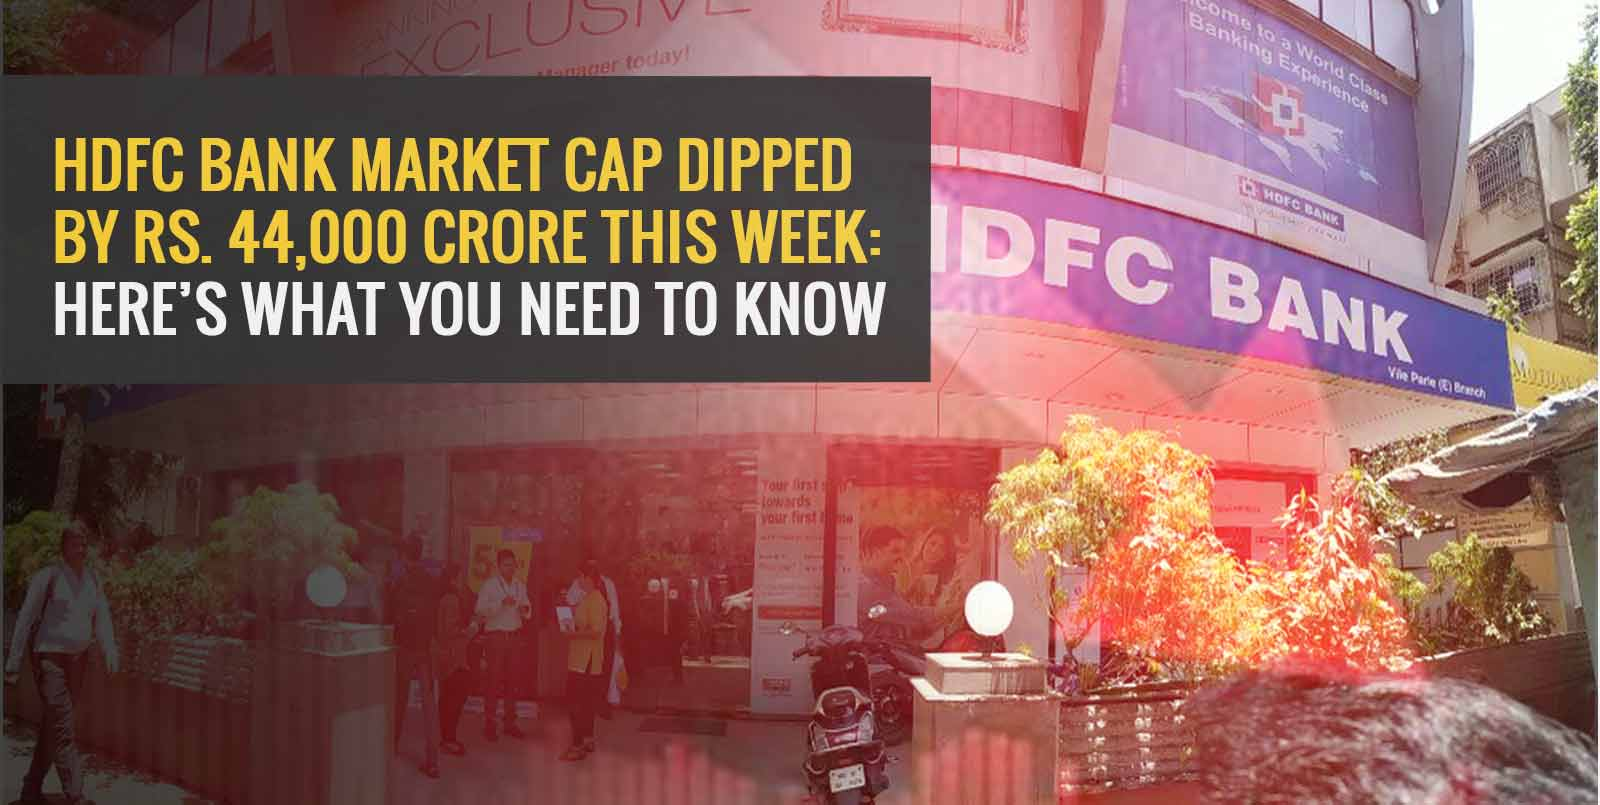 HDFC Bank Market Cap Dipped by Rs. 44,000 Crore This Week: Here's What You Need to Know